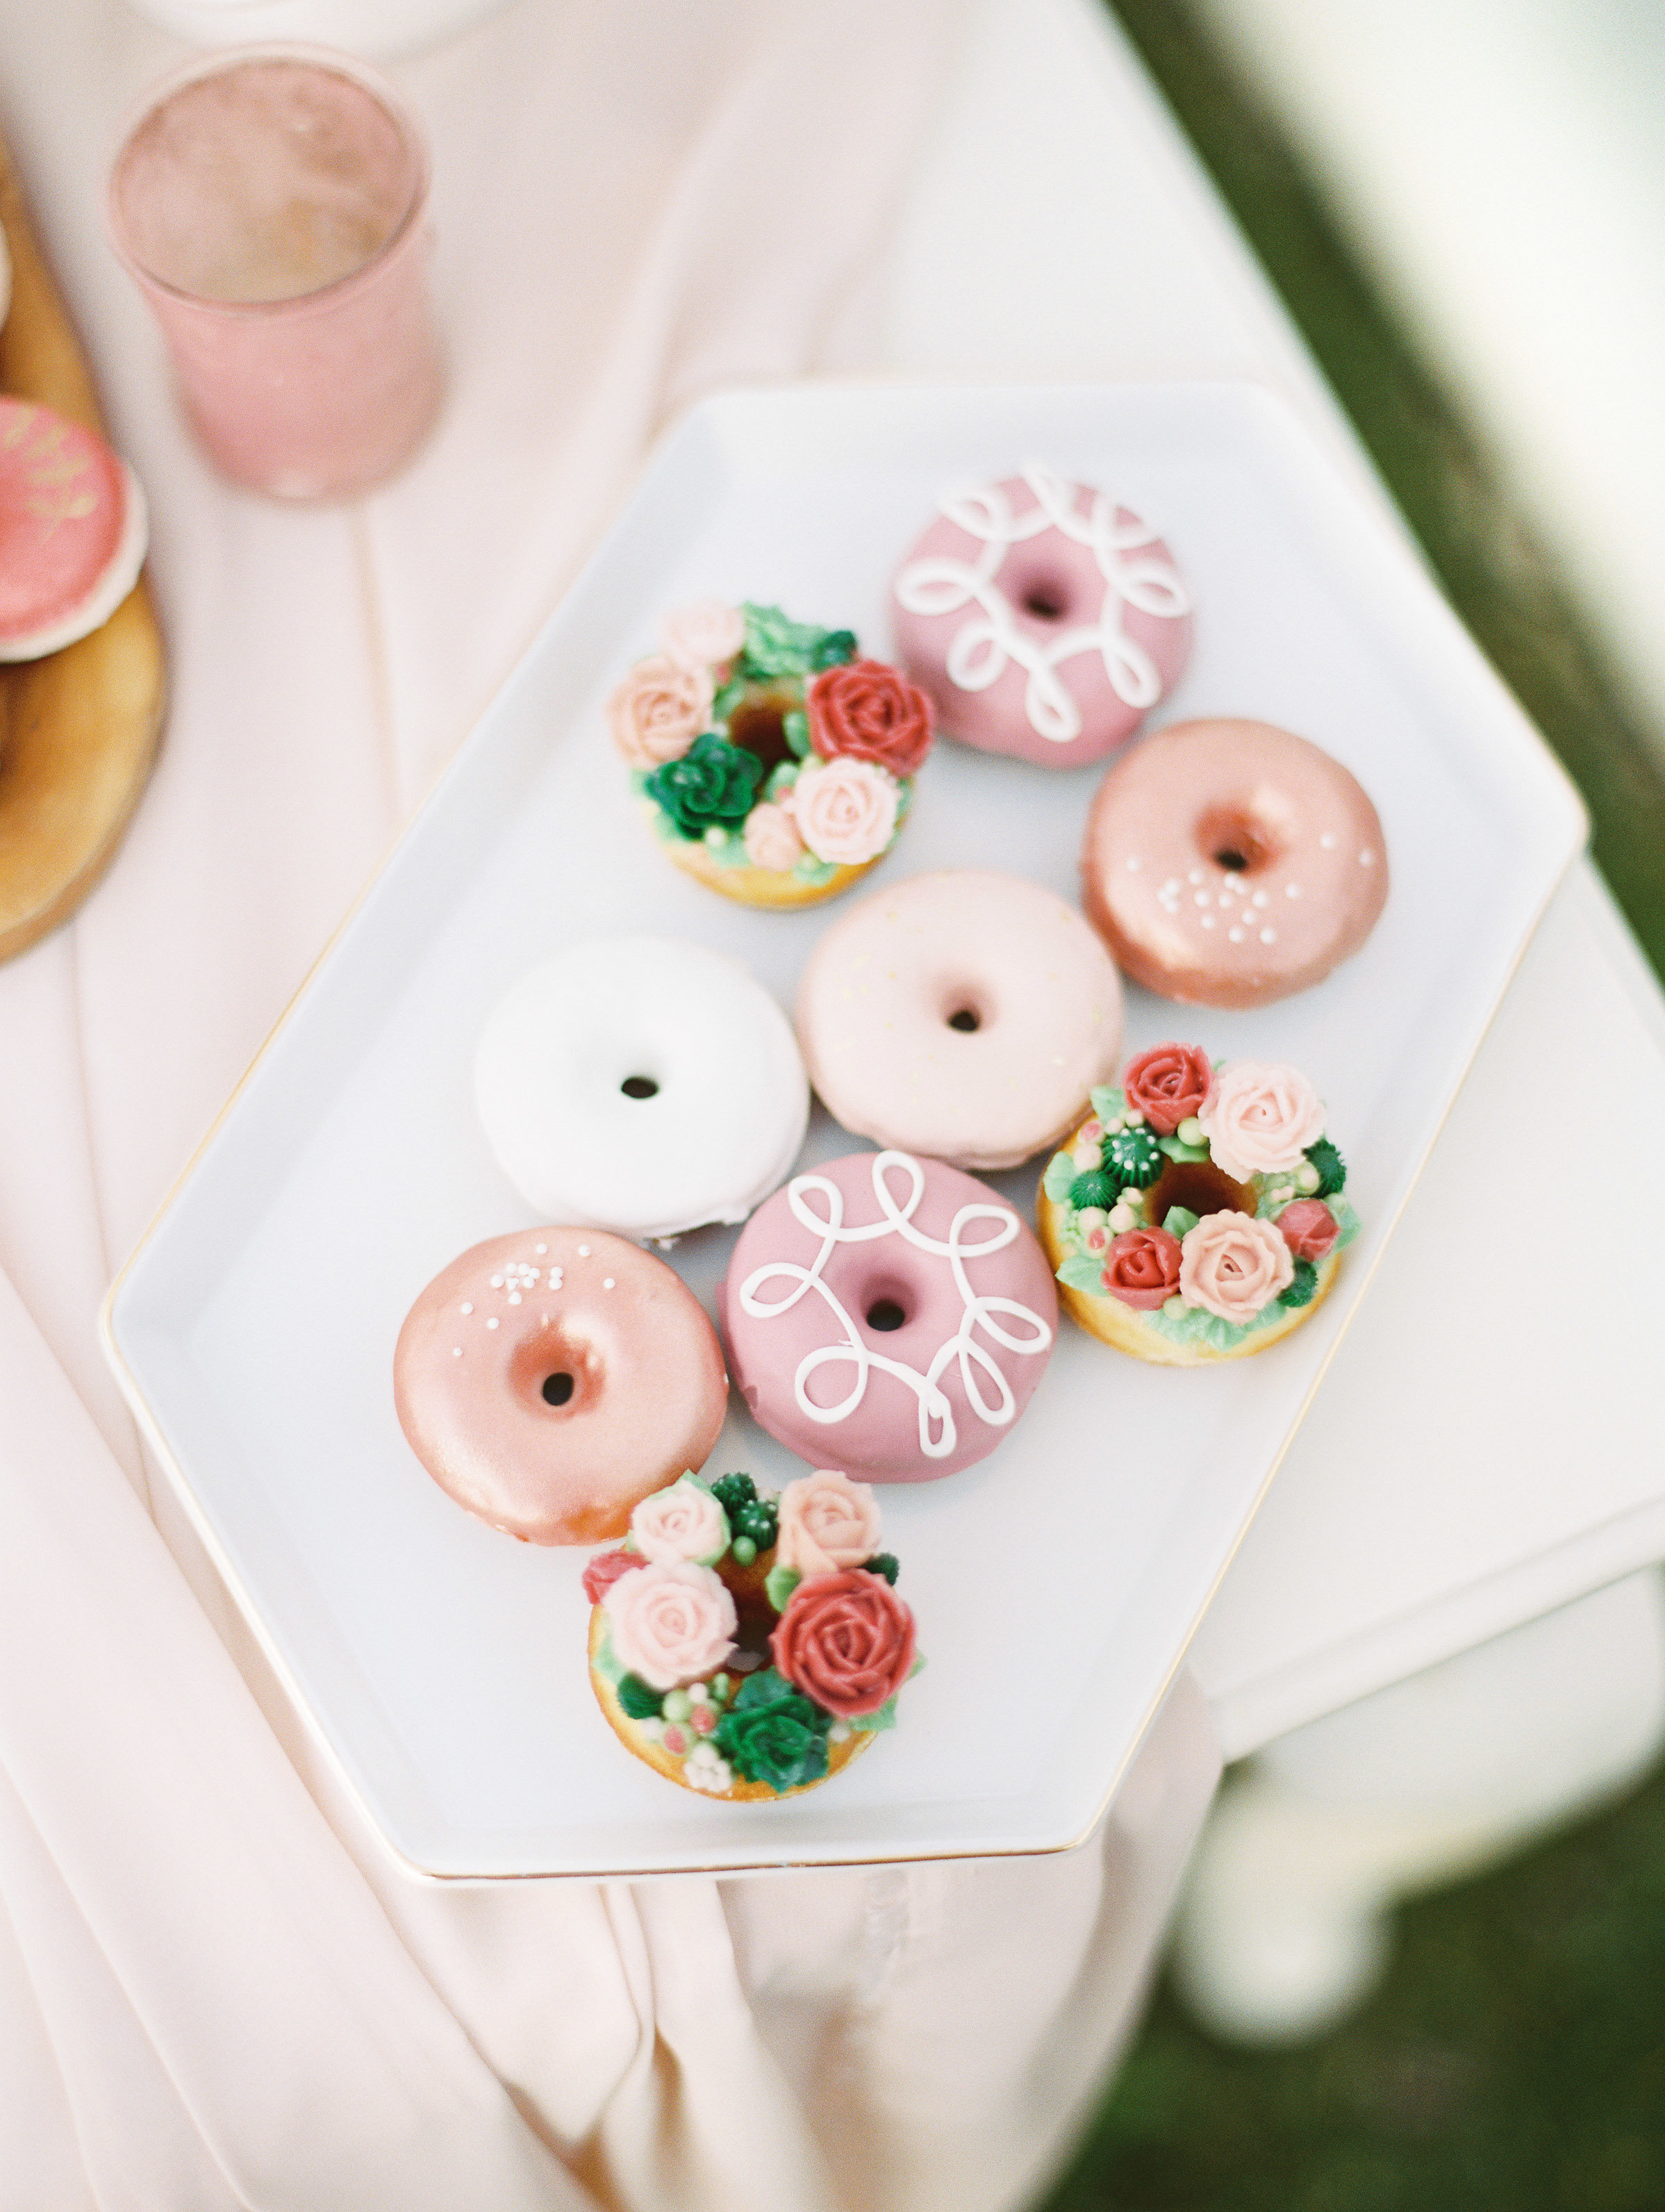 Bridal Shower Tea Party Ideas for a Classic Pre-Wedding